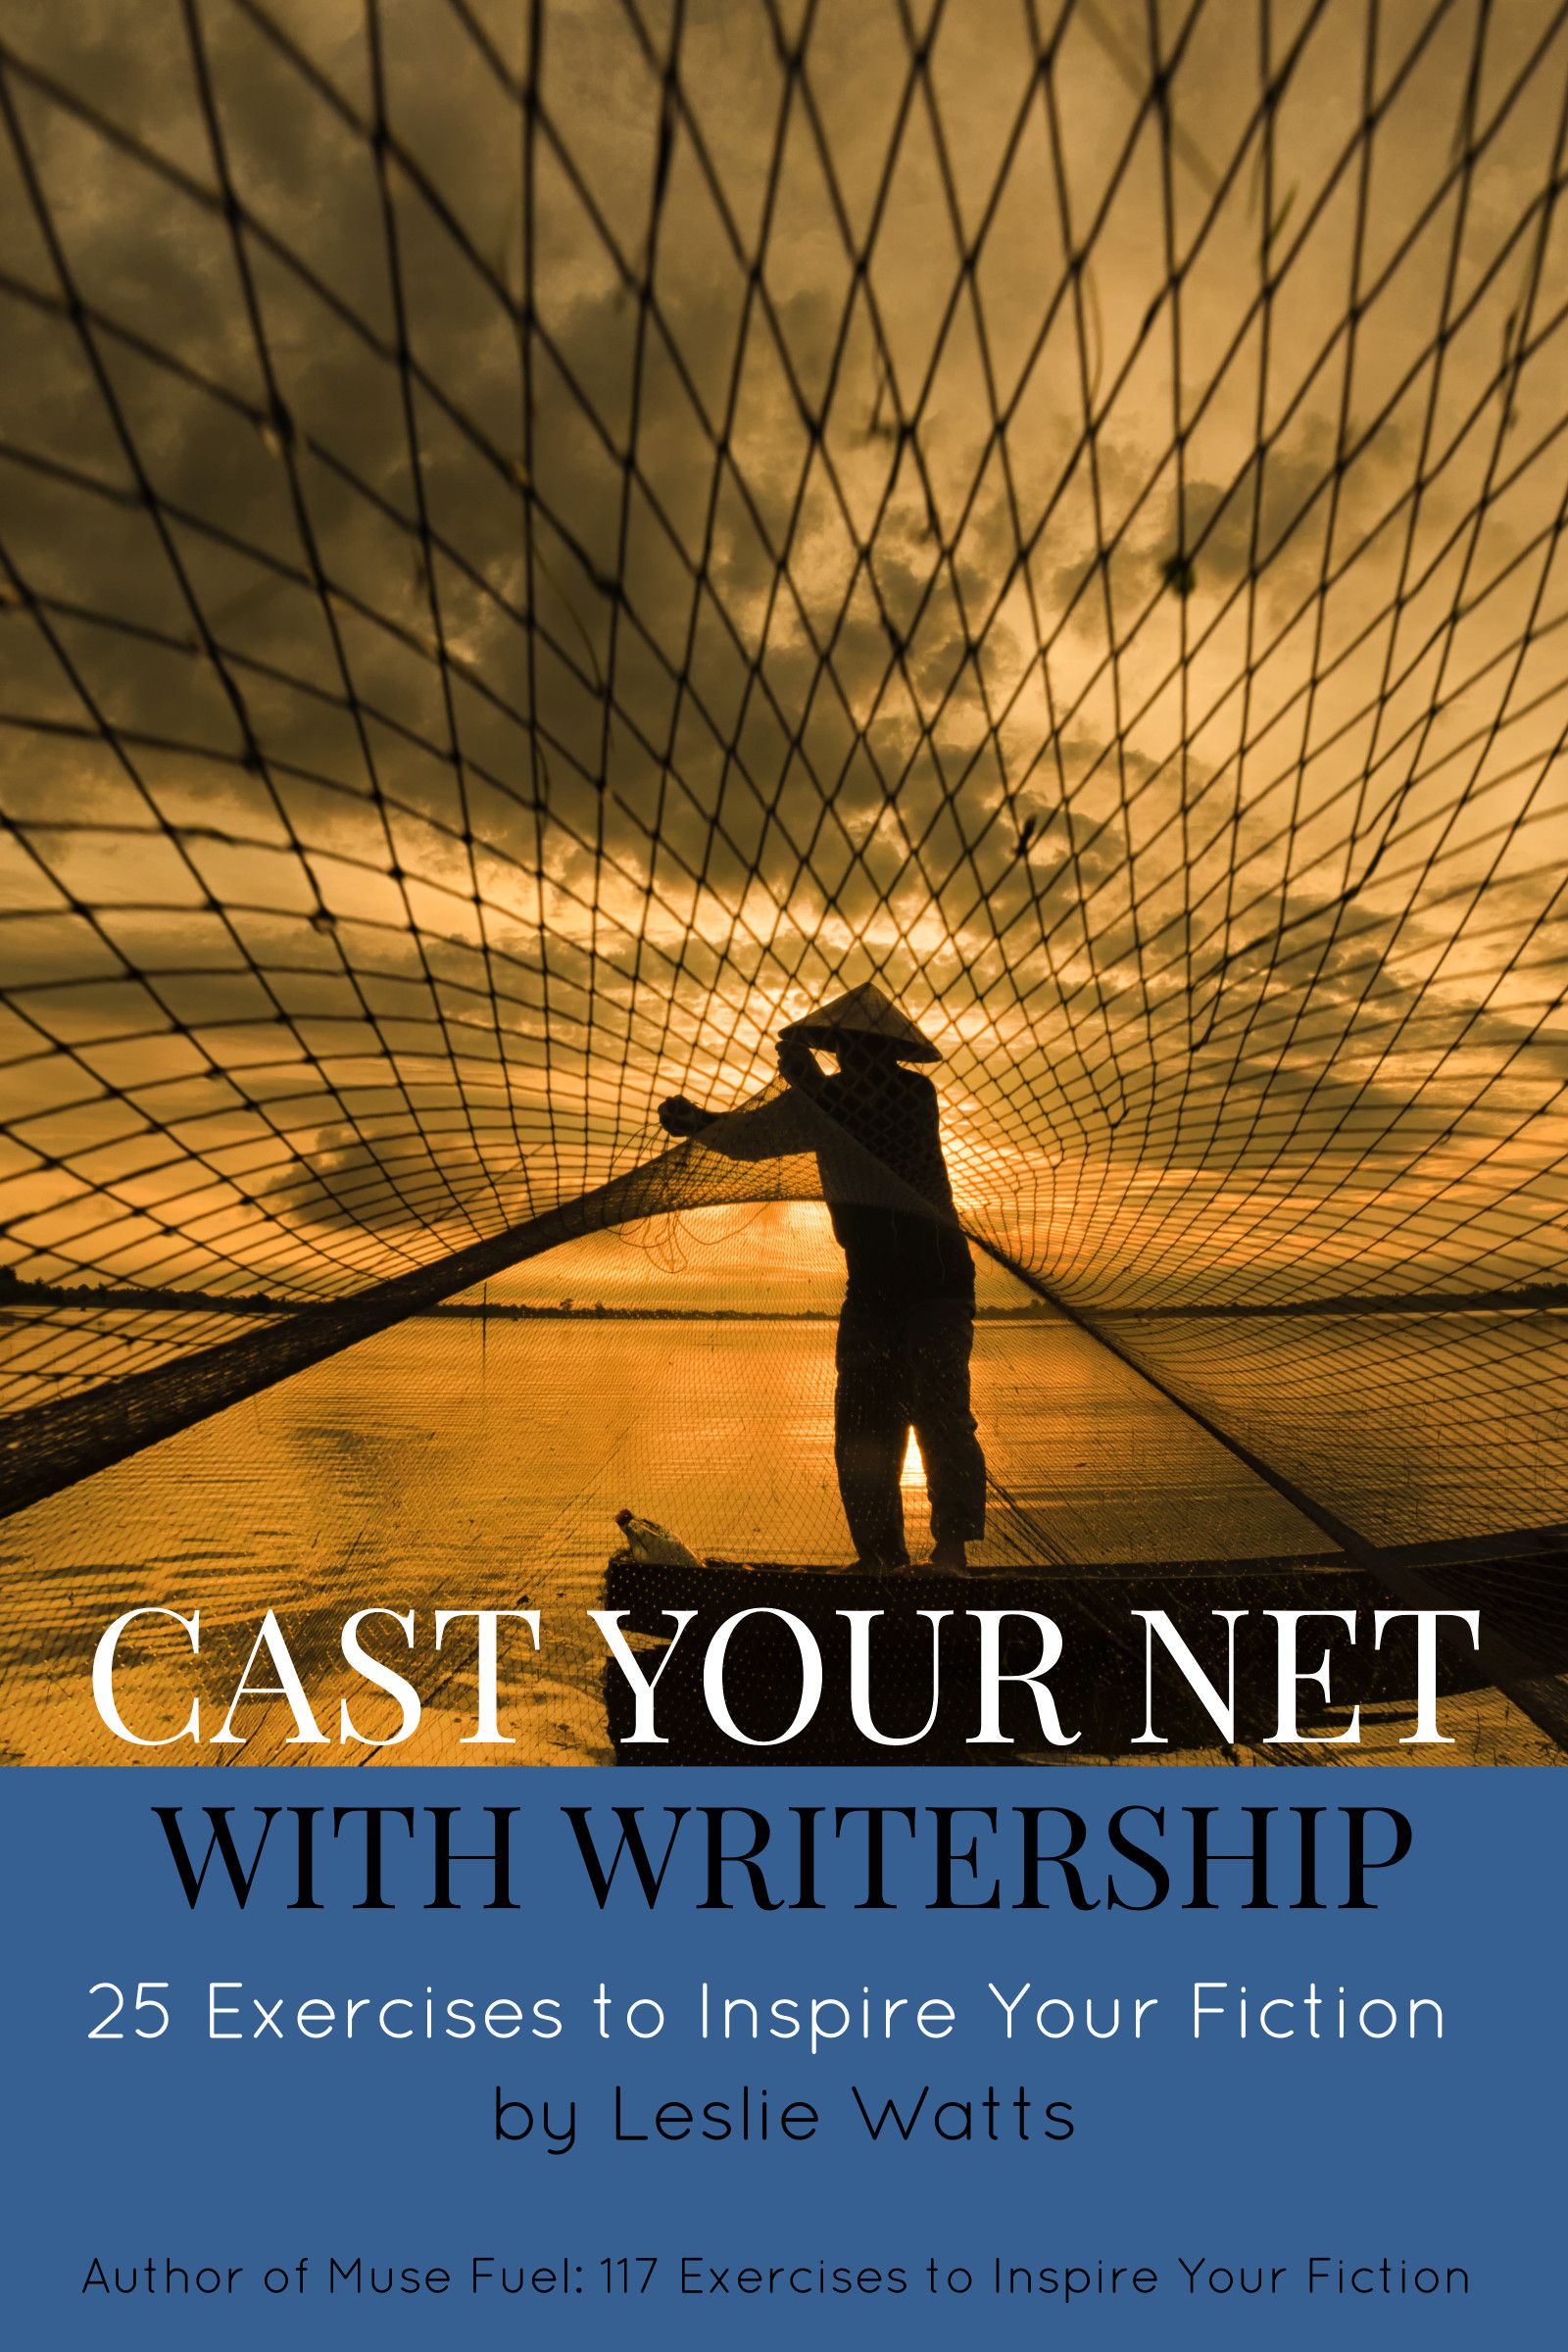 Cast Your Net with Writership